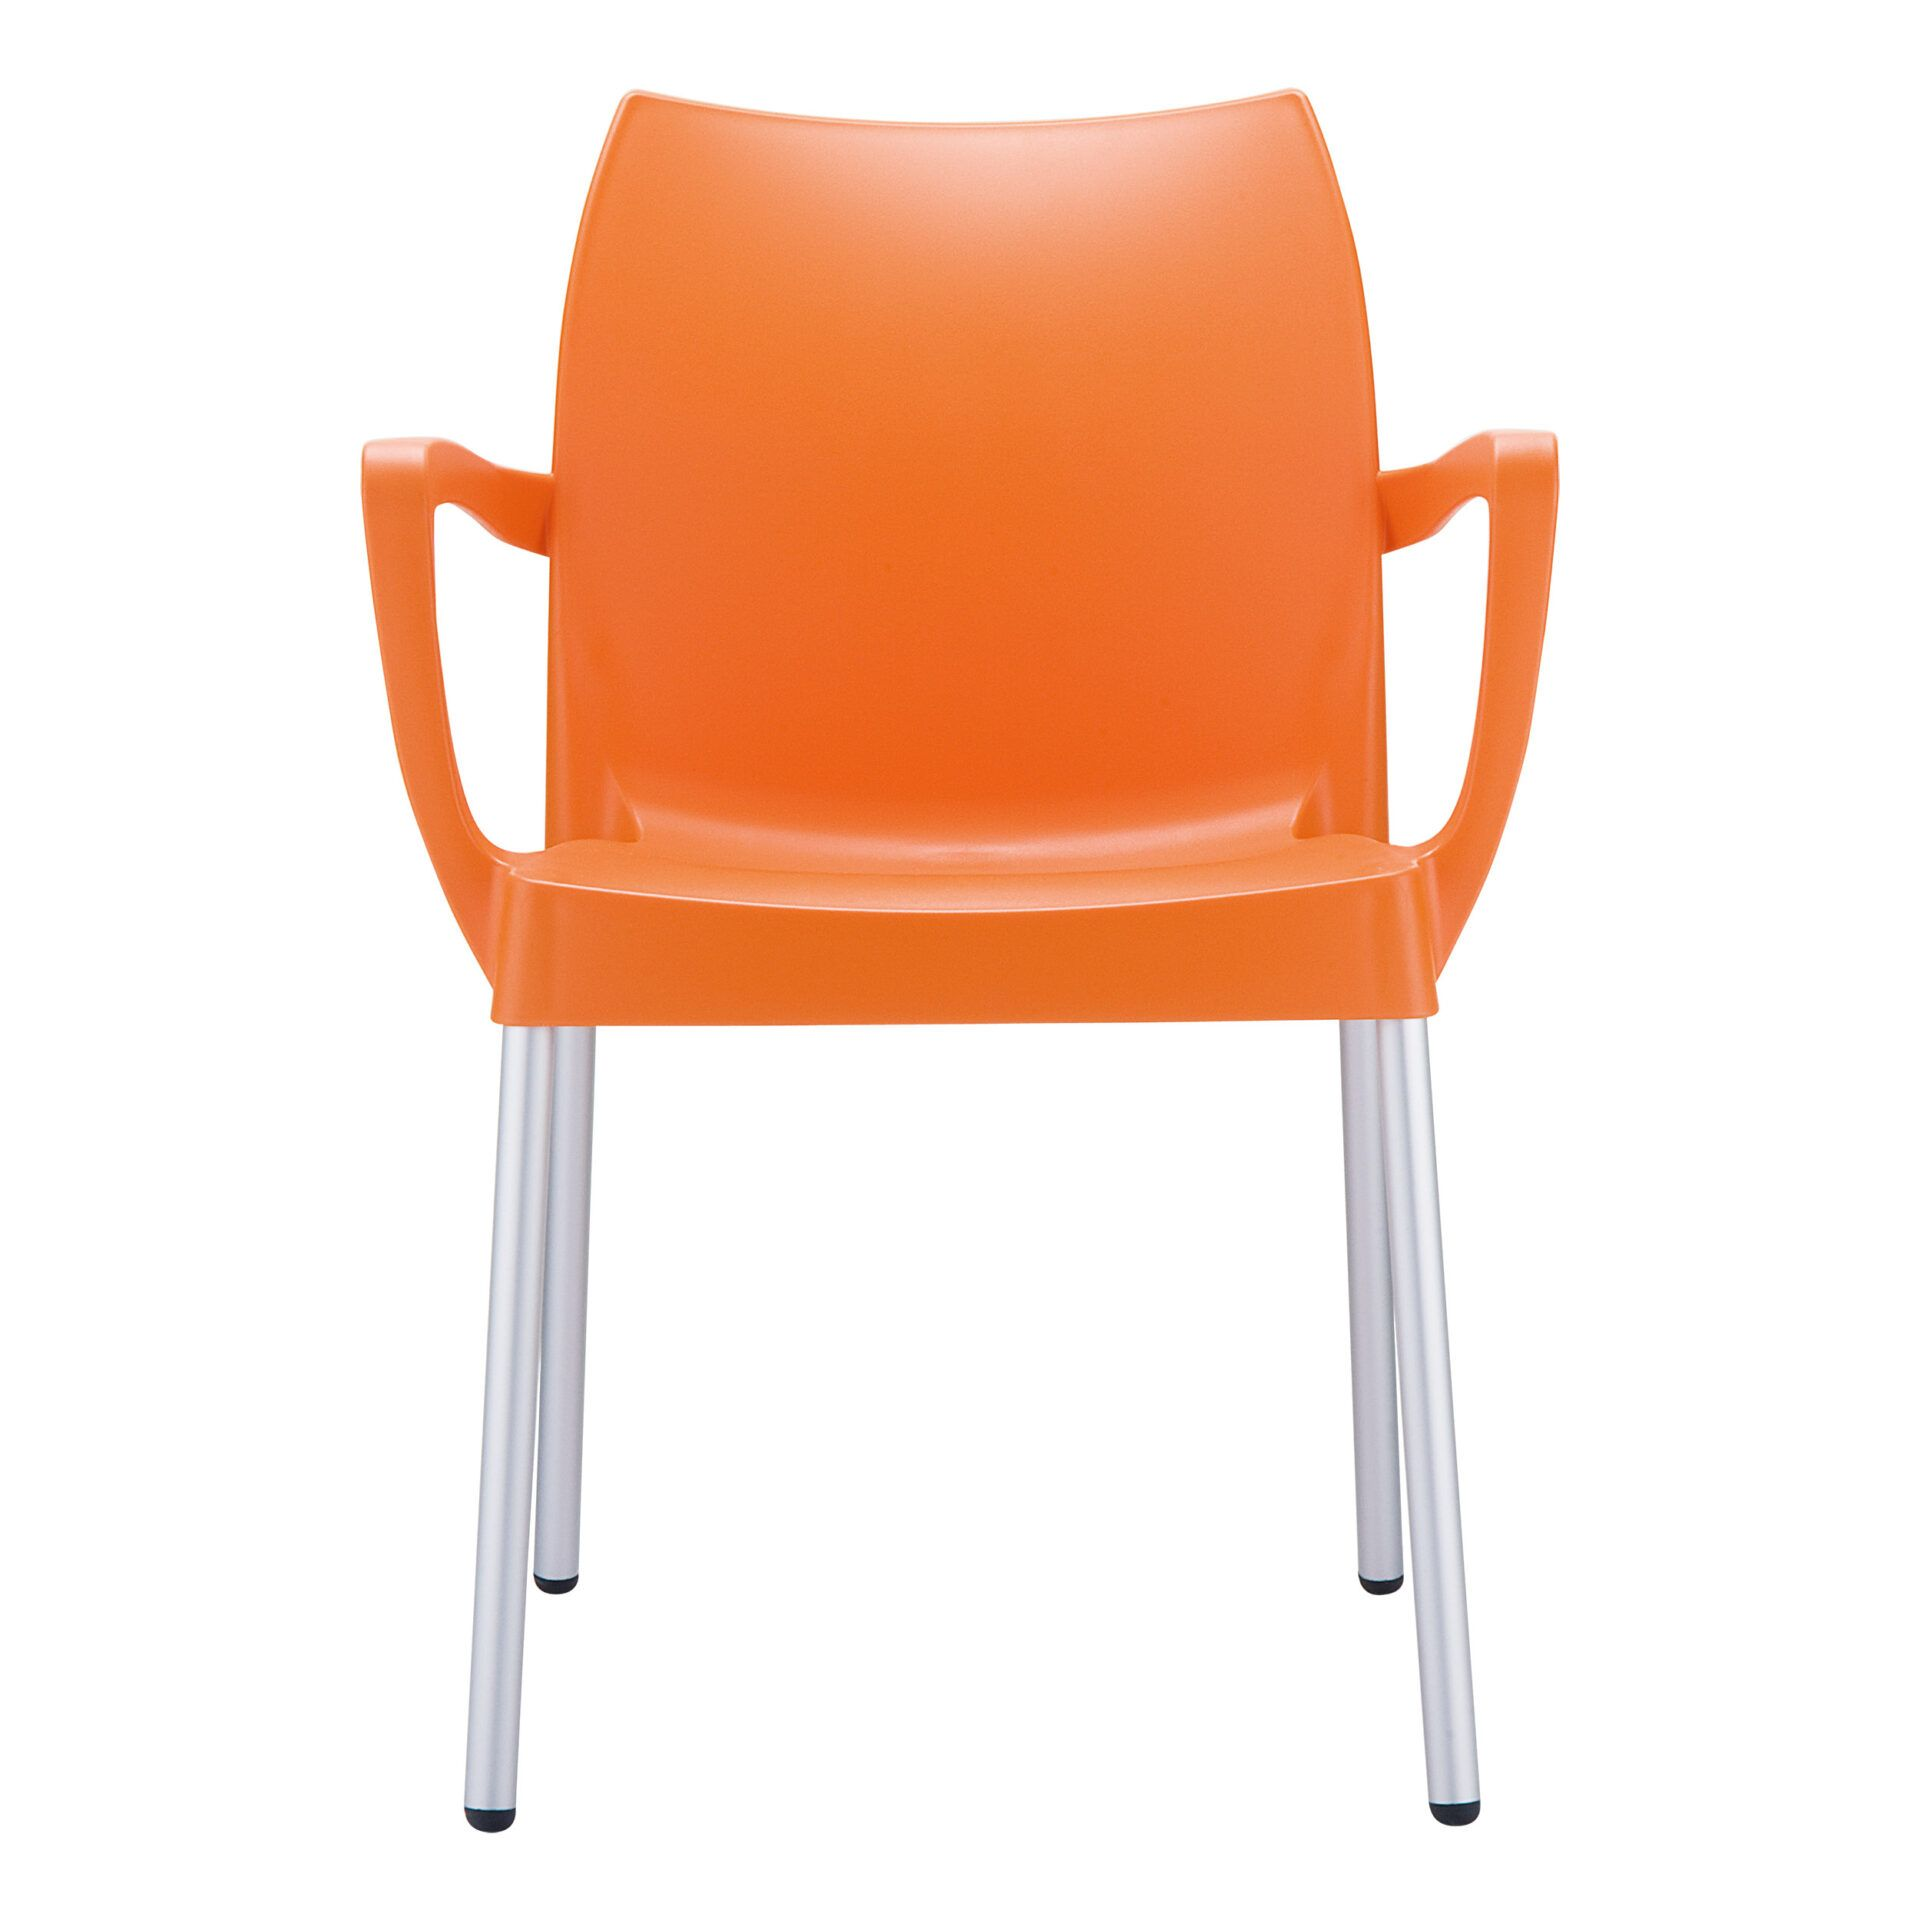 commercial polypropylene dolce chair orange front